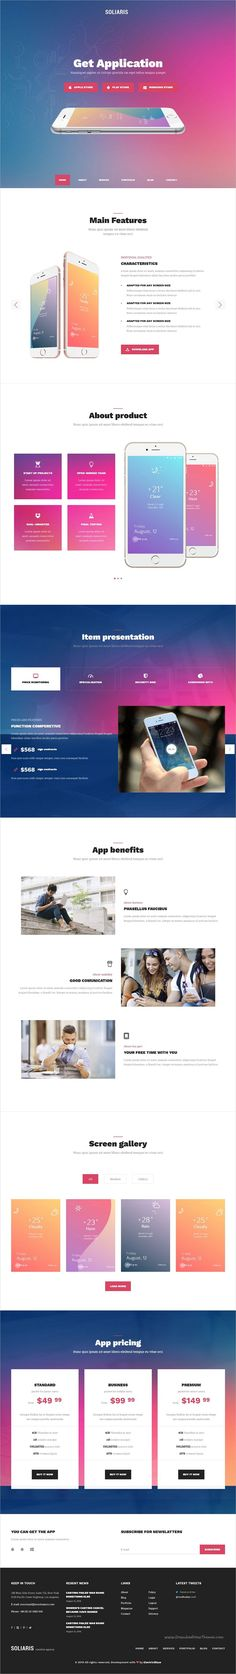 Soliaris is beautiful multipurpose responsive #WordPress theme for #webdesign digital agency, freelancer, #app, startup, business, services, software company websites with 18+ homepage layouts download now➩ https://themeforest.net/item/soliaris-multiconcept-business-wordpress-theme/17600904?ref=Datasata